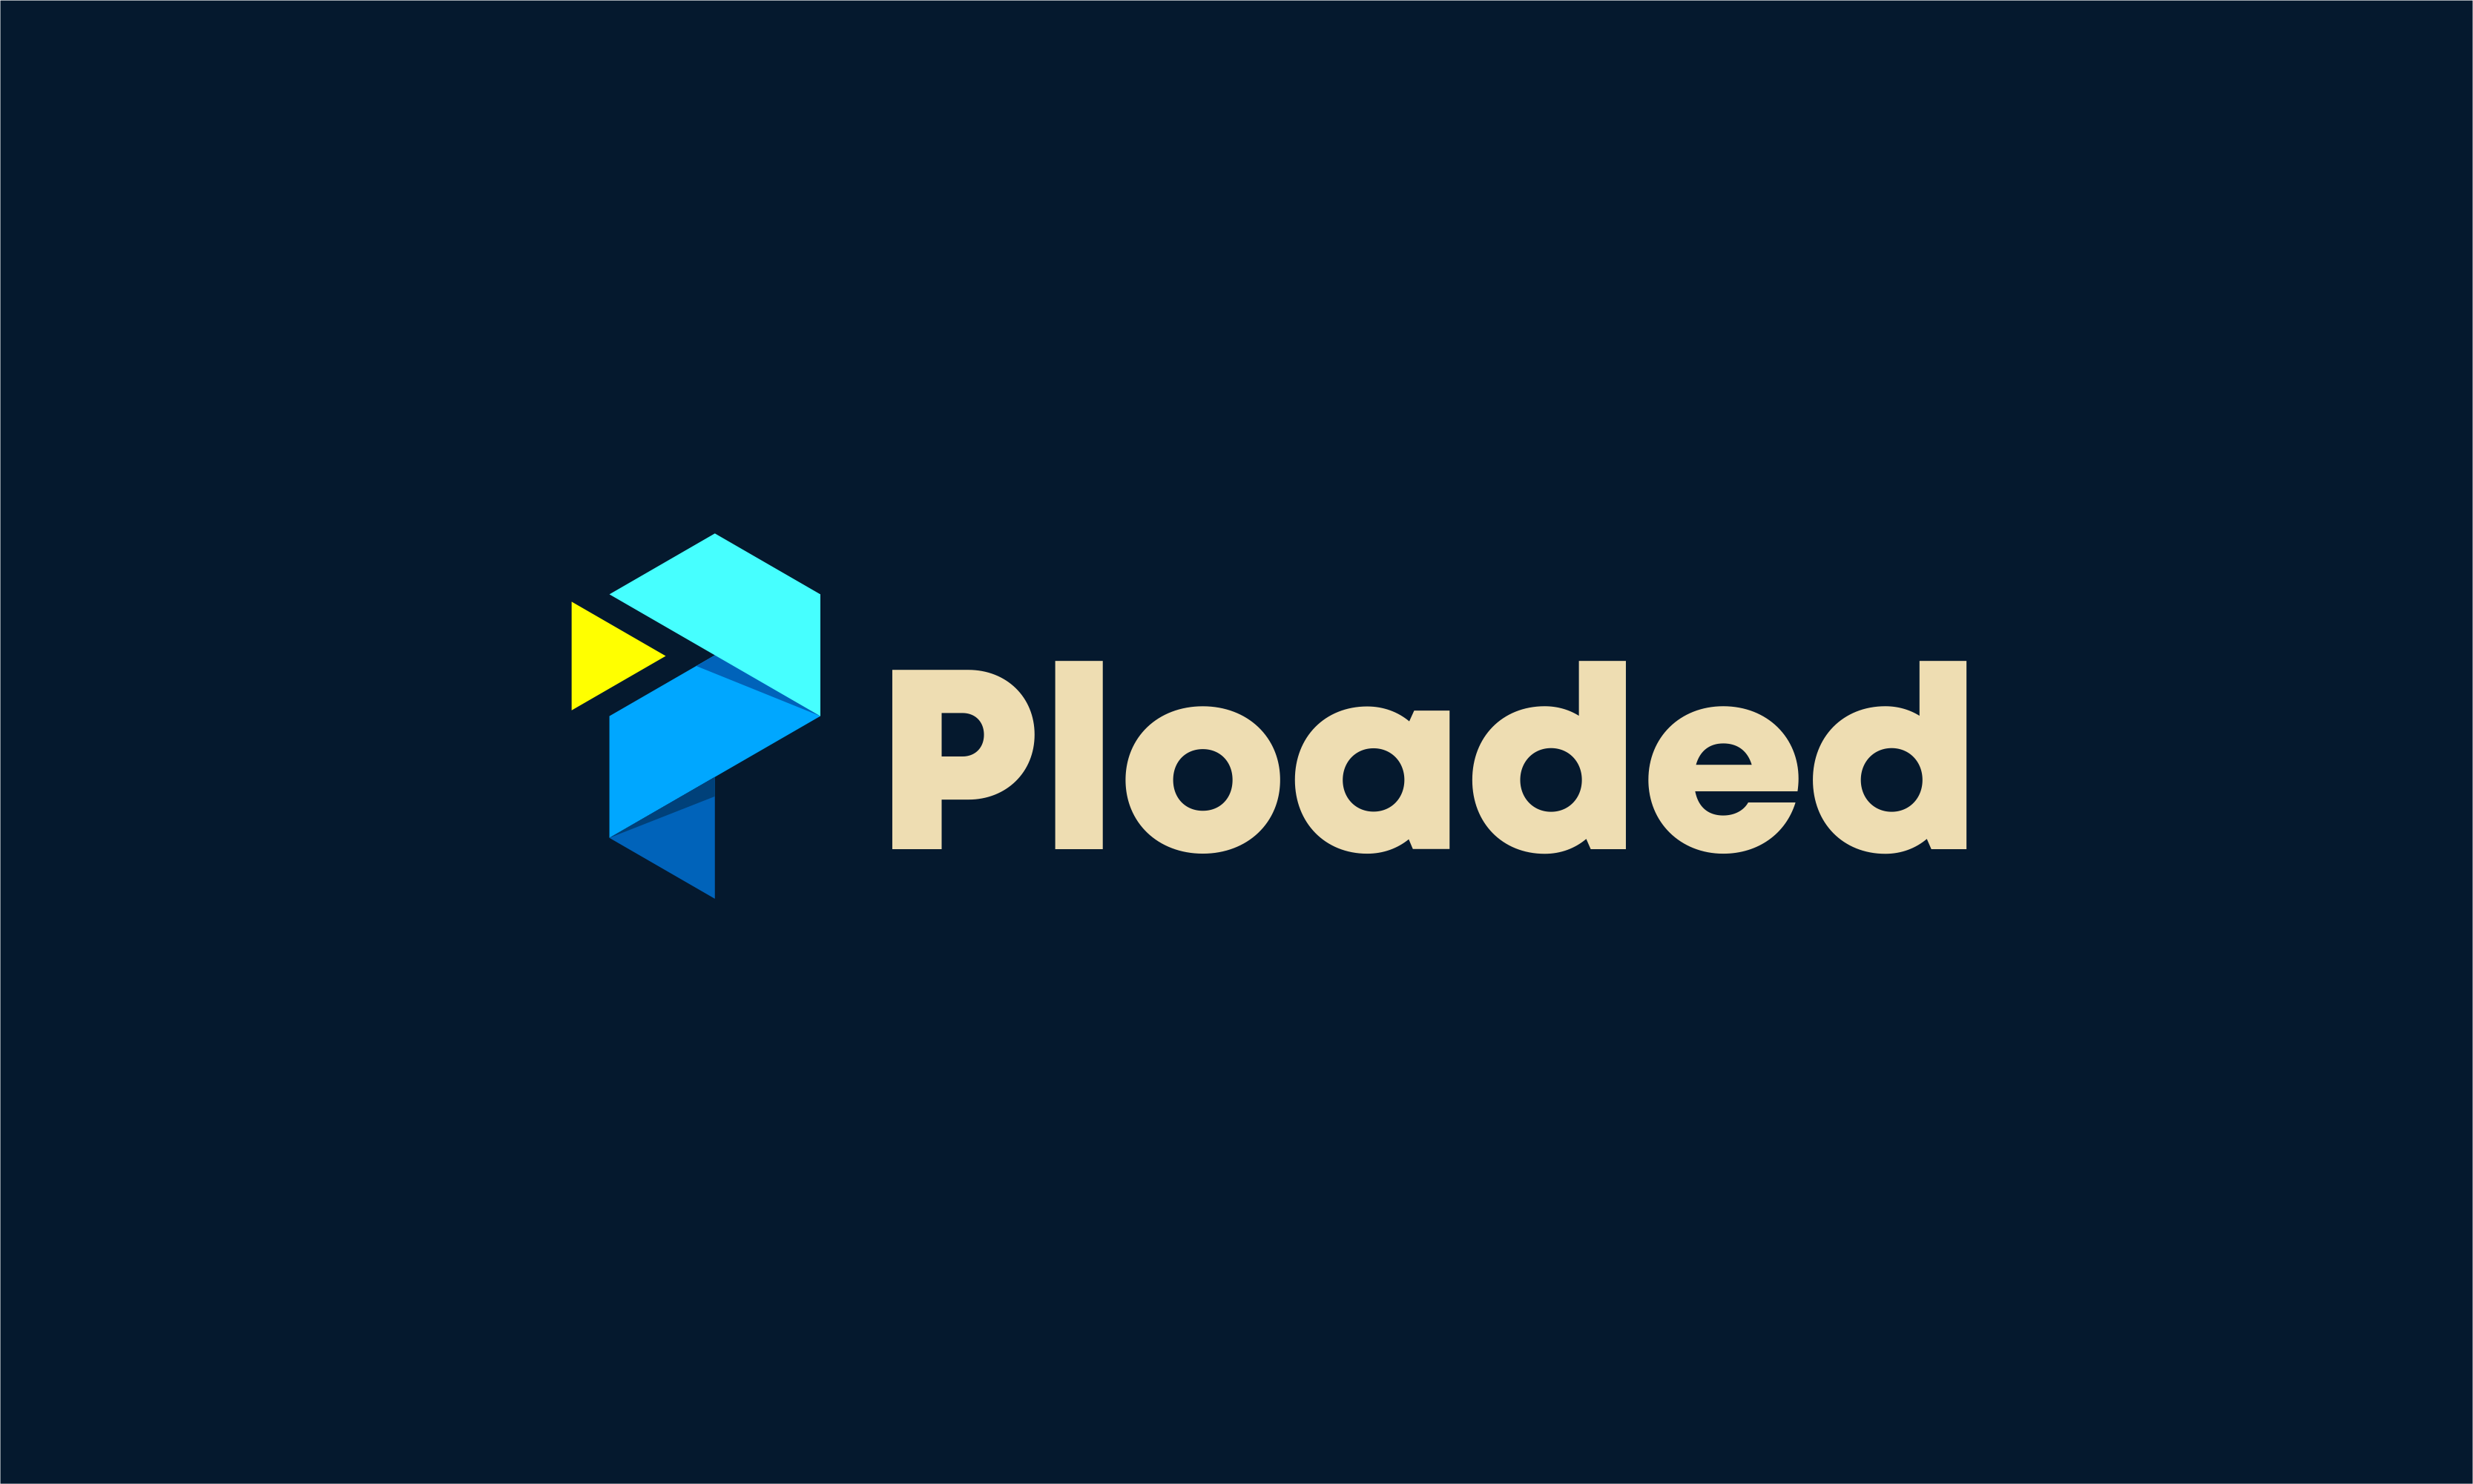 Ploaded - Retail business name for sale